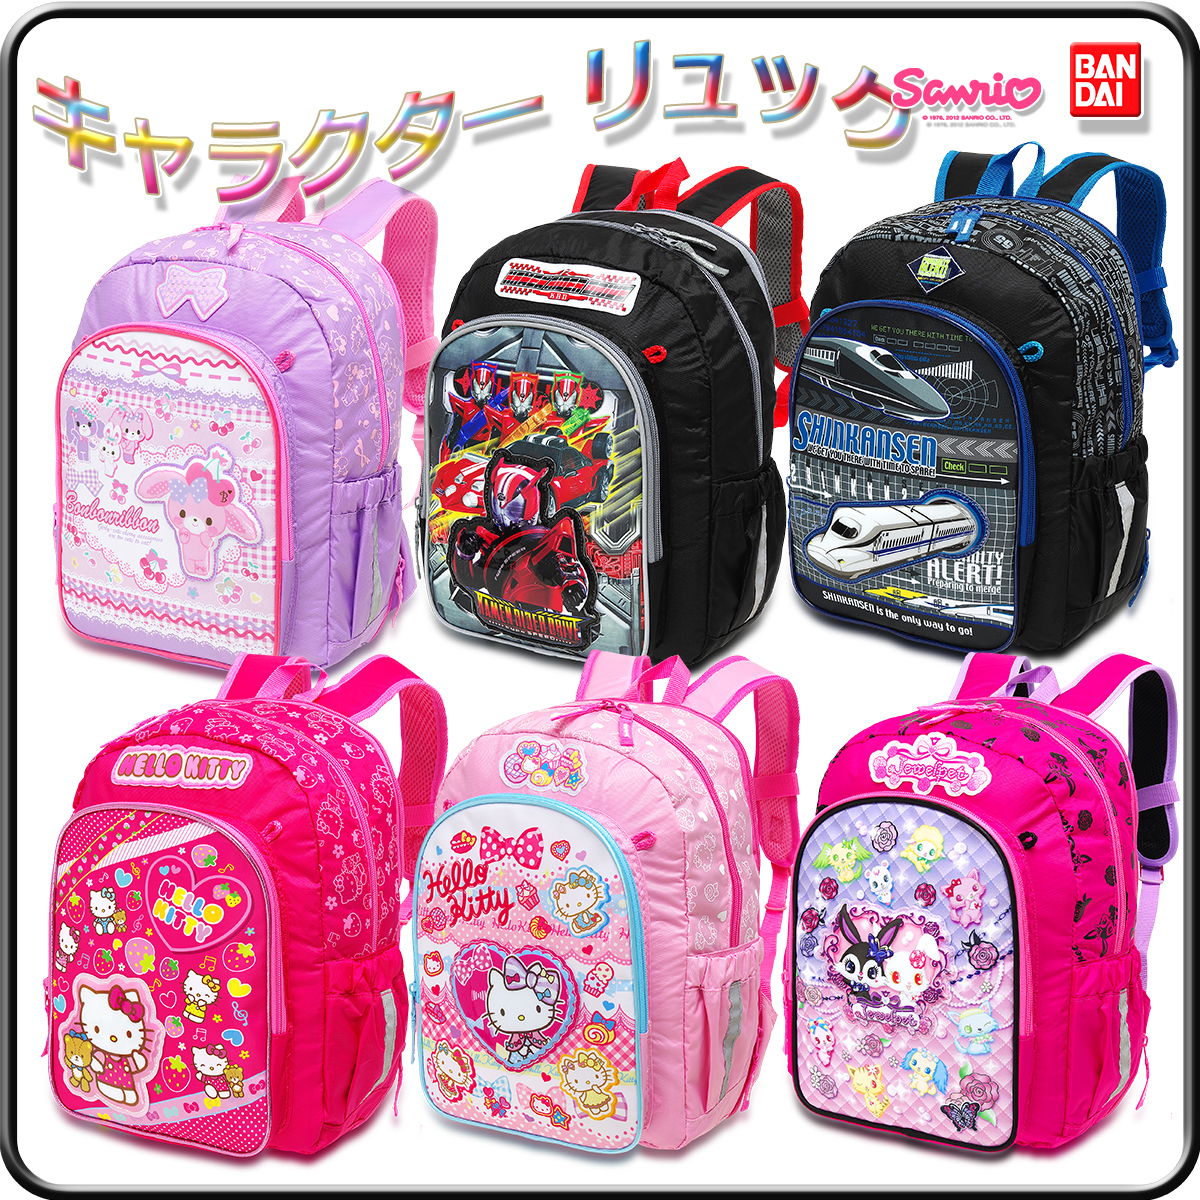 Kids Character Backpacks fgm9nwNA